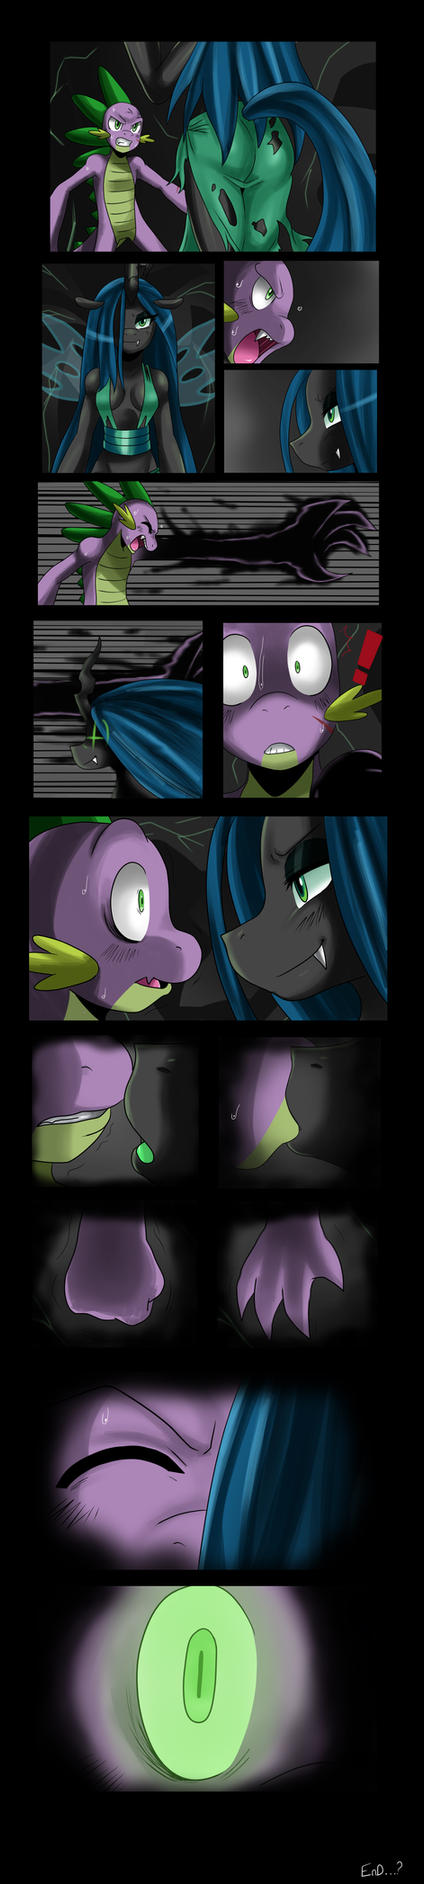 COMIC: Spike vs Chrysalis by ss2sonic